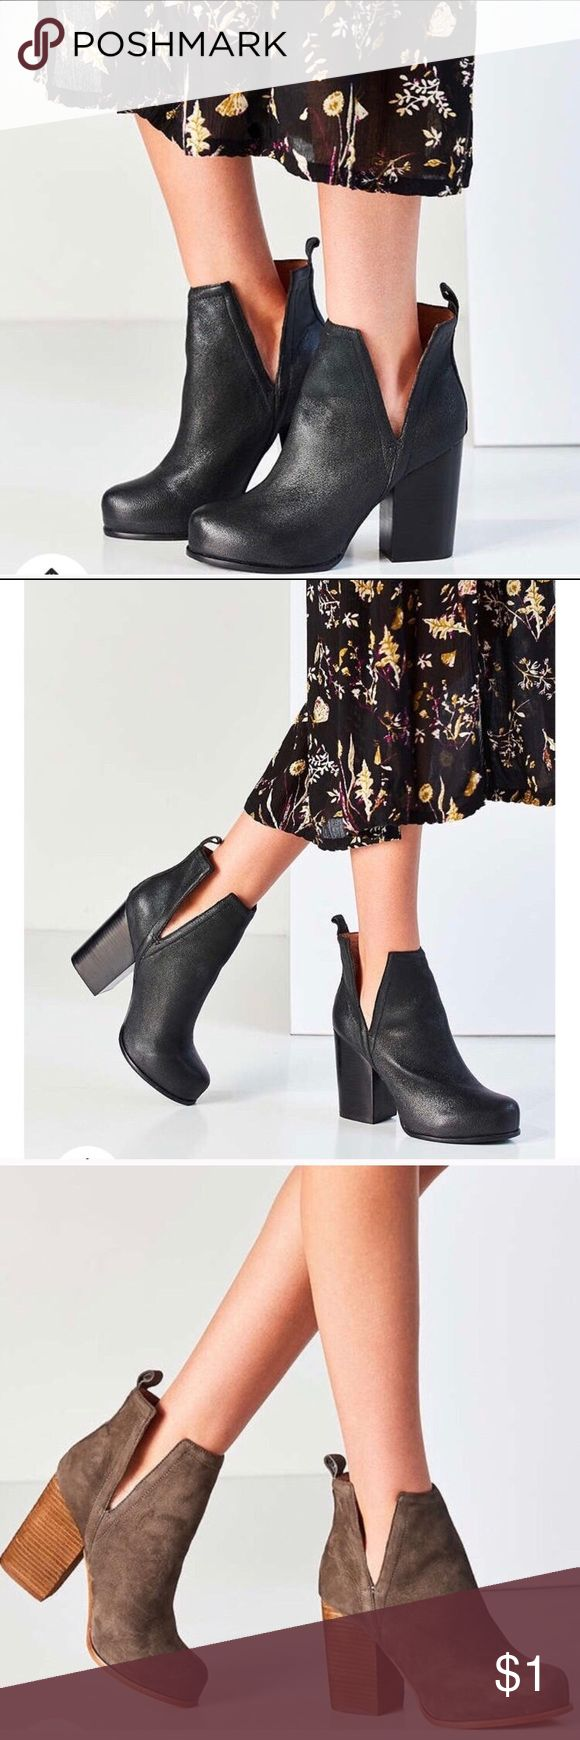 ISO Jeffrey Campbell Oshea I'm looking for these in either a 7.5, 8, or 8.5 in the black or brown color. Does anyone have a pair they are willing to part with?! Thank you! Jeffrey Campbell Shoes Ankle Boots & Booties